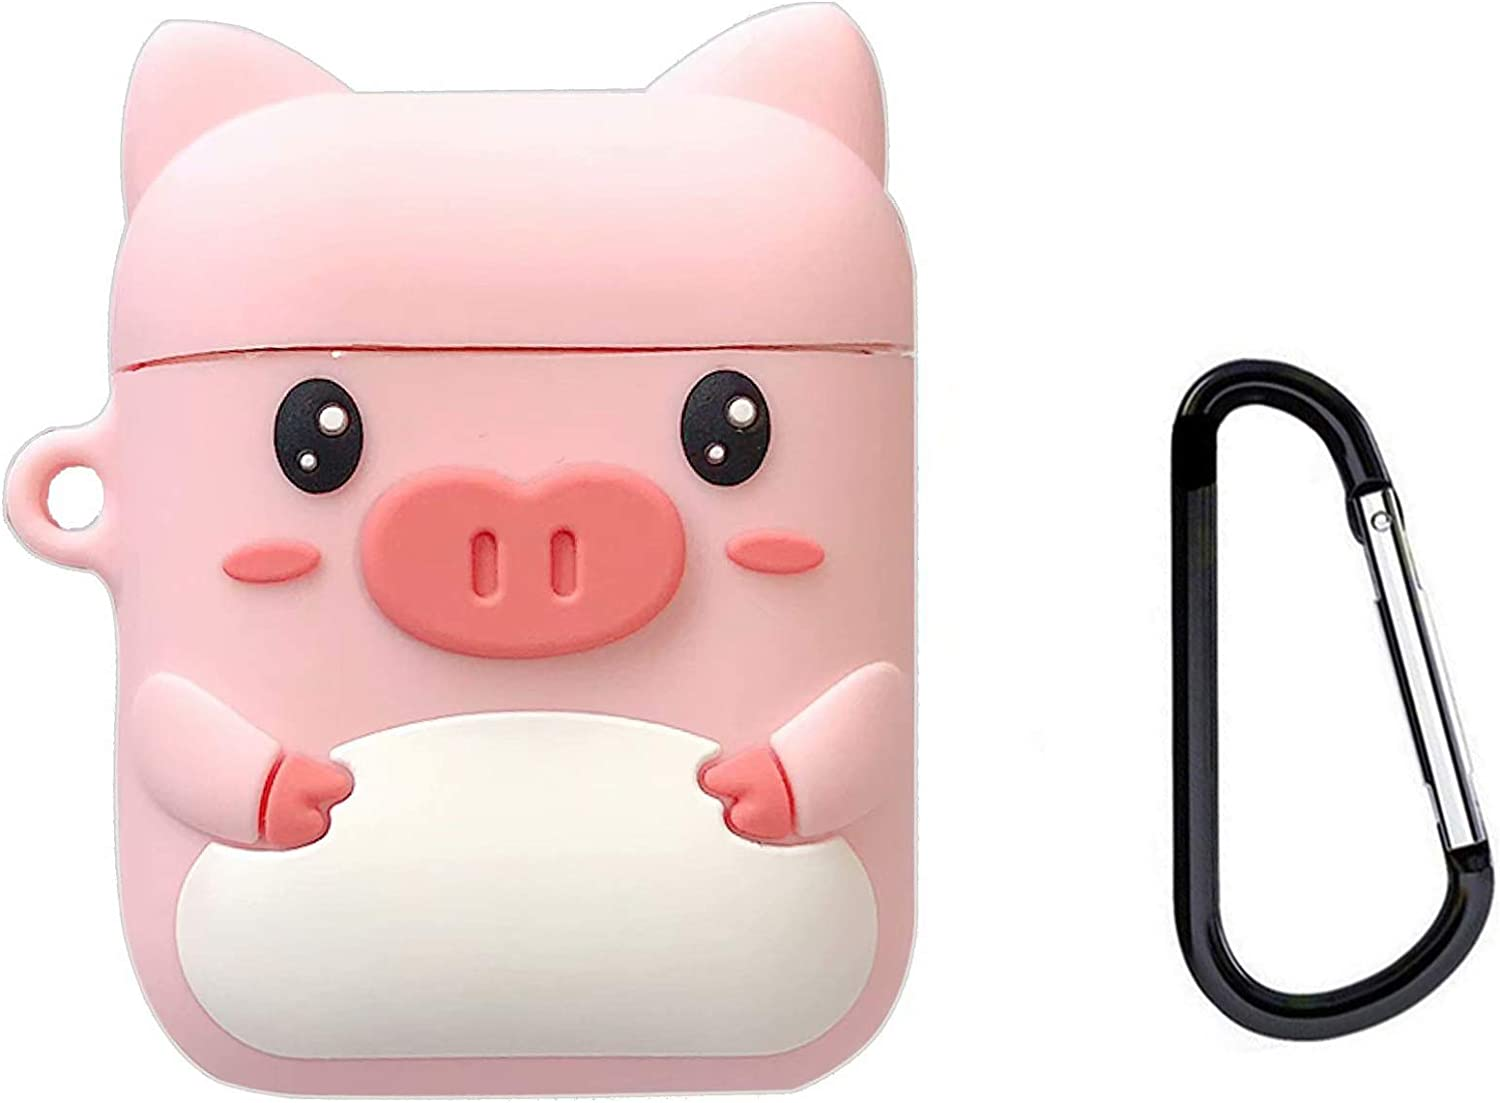 Awin Case for Airpods Case,AirPods 2 Case,Airpods Accessories,Airpods Skin,Cute Cartoon Pink Piglet Silicone Girls Kids Protective Cover Case Compatible for Airpods 1 & 2 Charging Case (Pink Piglet)